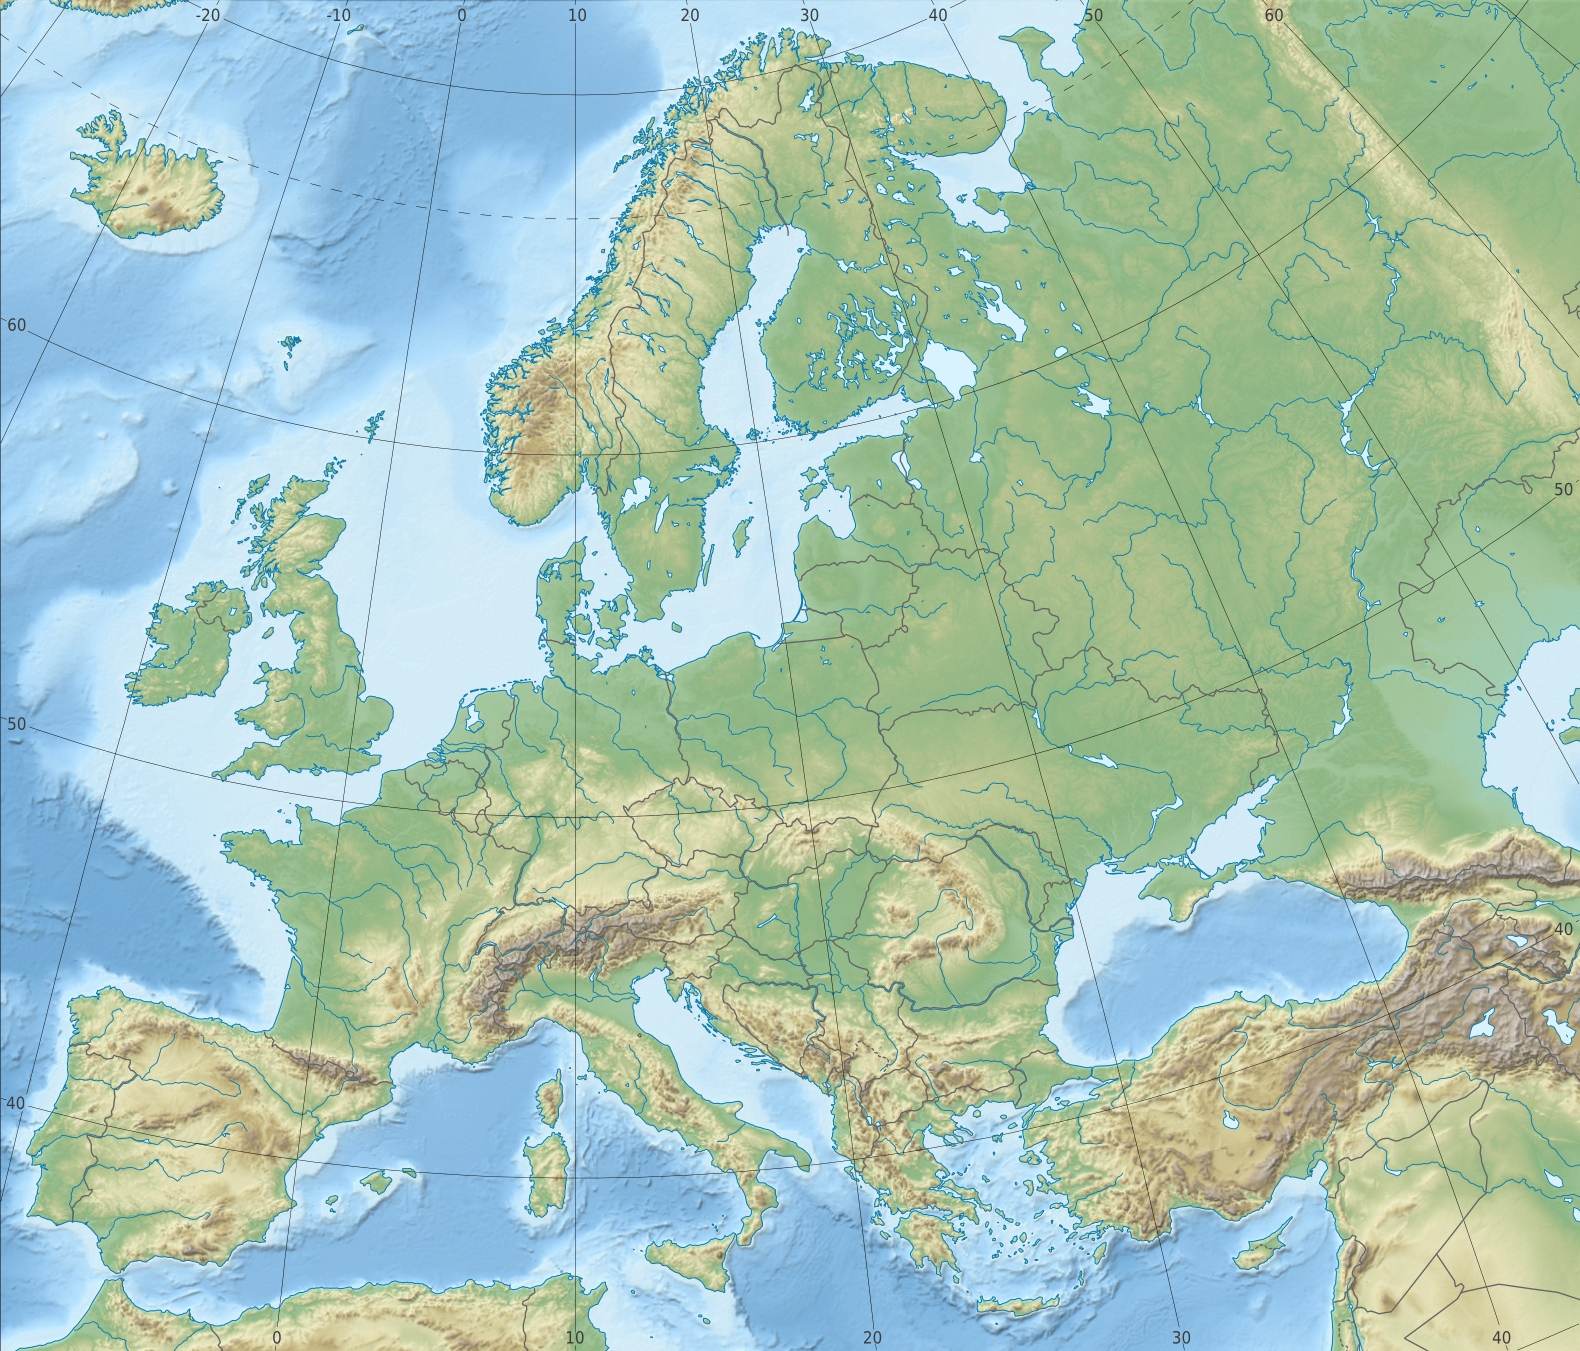 Where Did All The Mountains Go Page - Europe terrain map